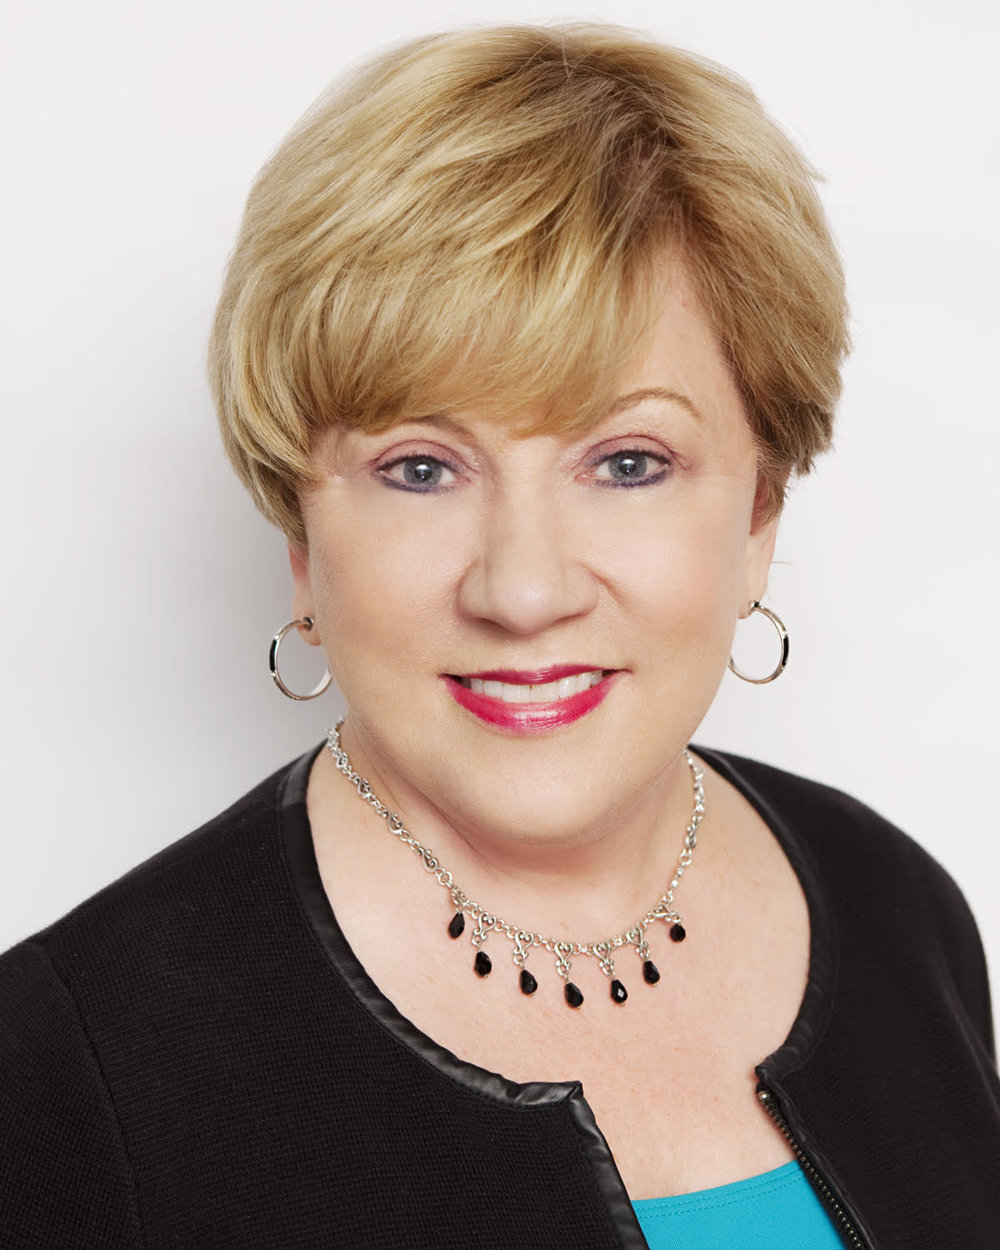 Ann Baker - Realtor® Phone: 817-475-1323  Email:                        AnnBYTeam@kw.com Ann Baker is a native Texas who has lived in North Texas most of her life. She now lives in North Richland Hills, but works throughout the Metroplex. Ann has always had an interest in real estate. After more than 20 years in the corporate field, she decided to pursue her dream of becoming a real estate agent.  Ann realizes what an important decision it is to buy or sell a home. She enjoys helping people through the process. Ann is an Accredited Staging Professional who can assist you in preparing your home for sale. Ann also has the Seniors Real Estate Specialist designation. Ann is excellent in helping people with lifestyle transitions and right sizing. When not working with clients, Ann enjoys spending time with family and her Cocker Spaniel. Ann also enjoys activities at her church and enjoys attending several Bible Study classes.  The Blaser Yoakum Team is honored to have Ann as part of the team.